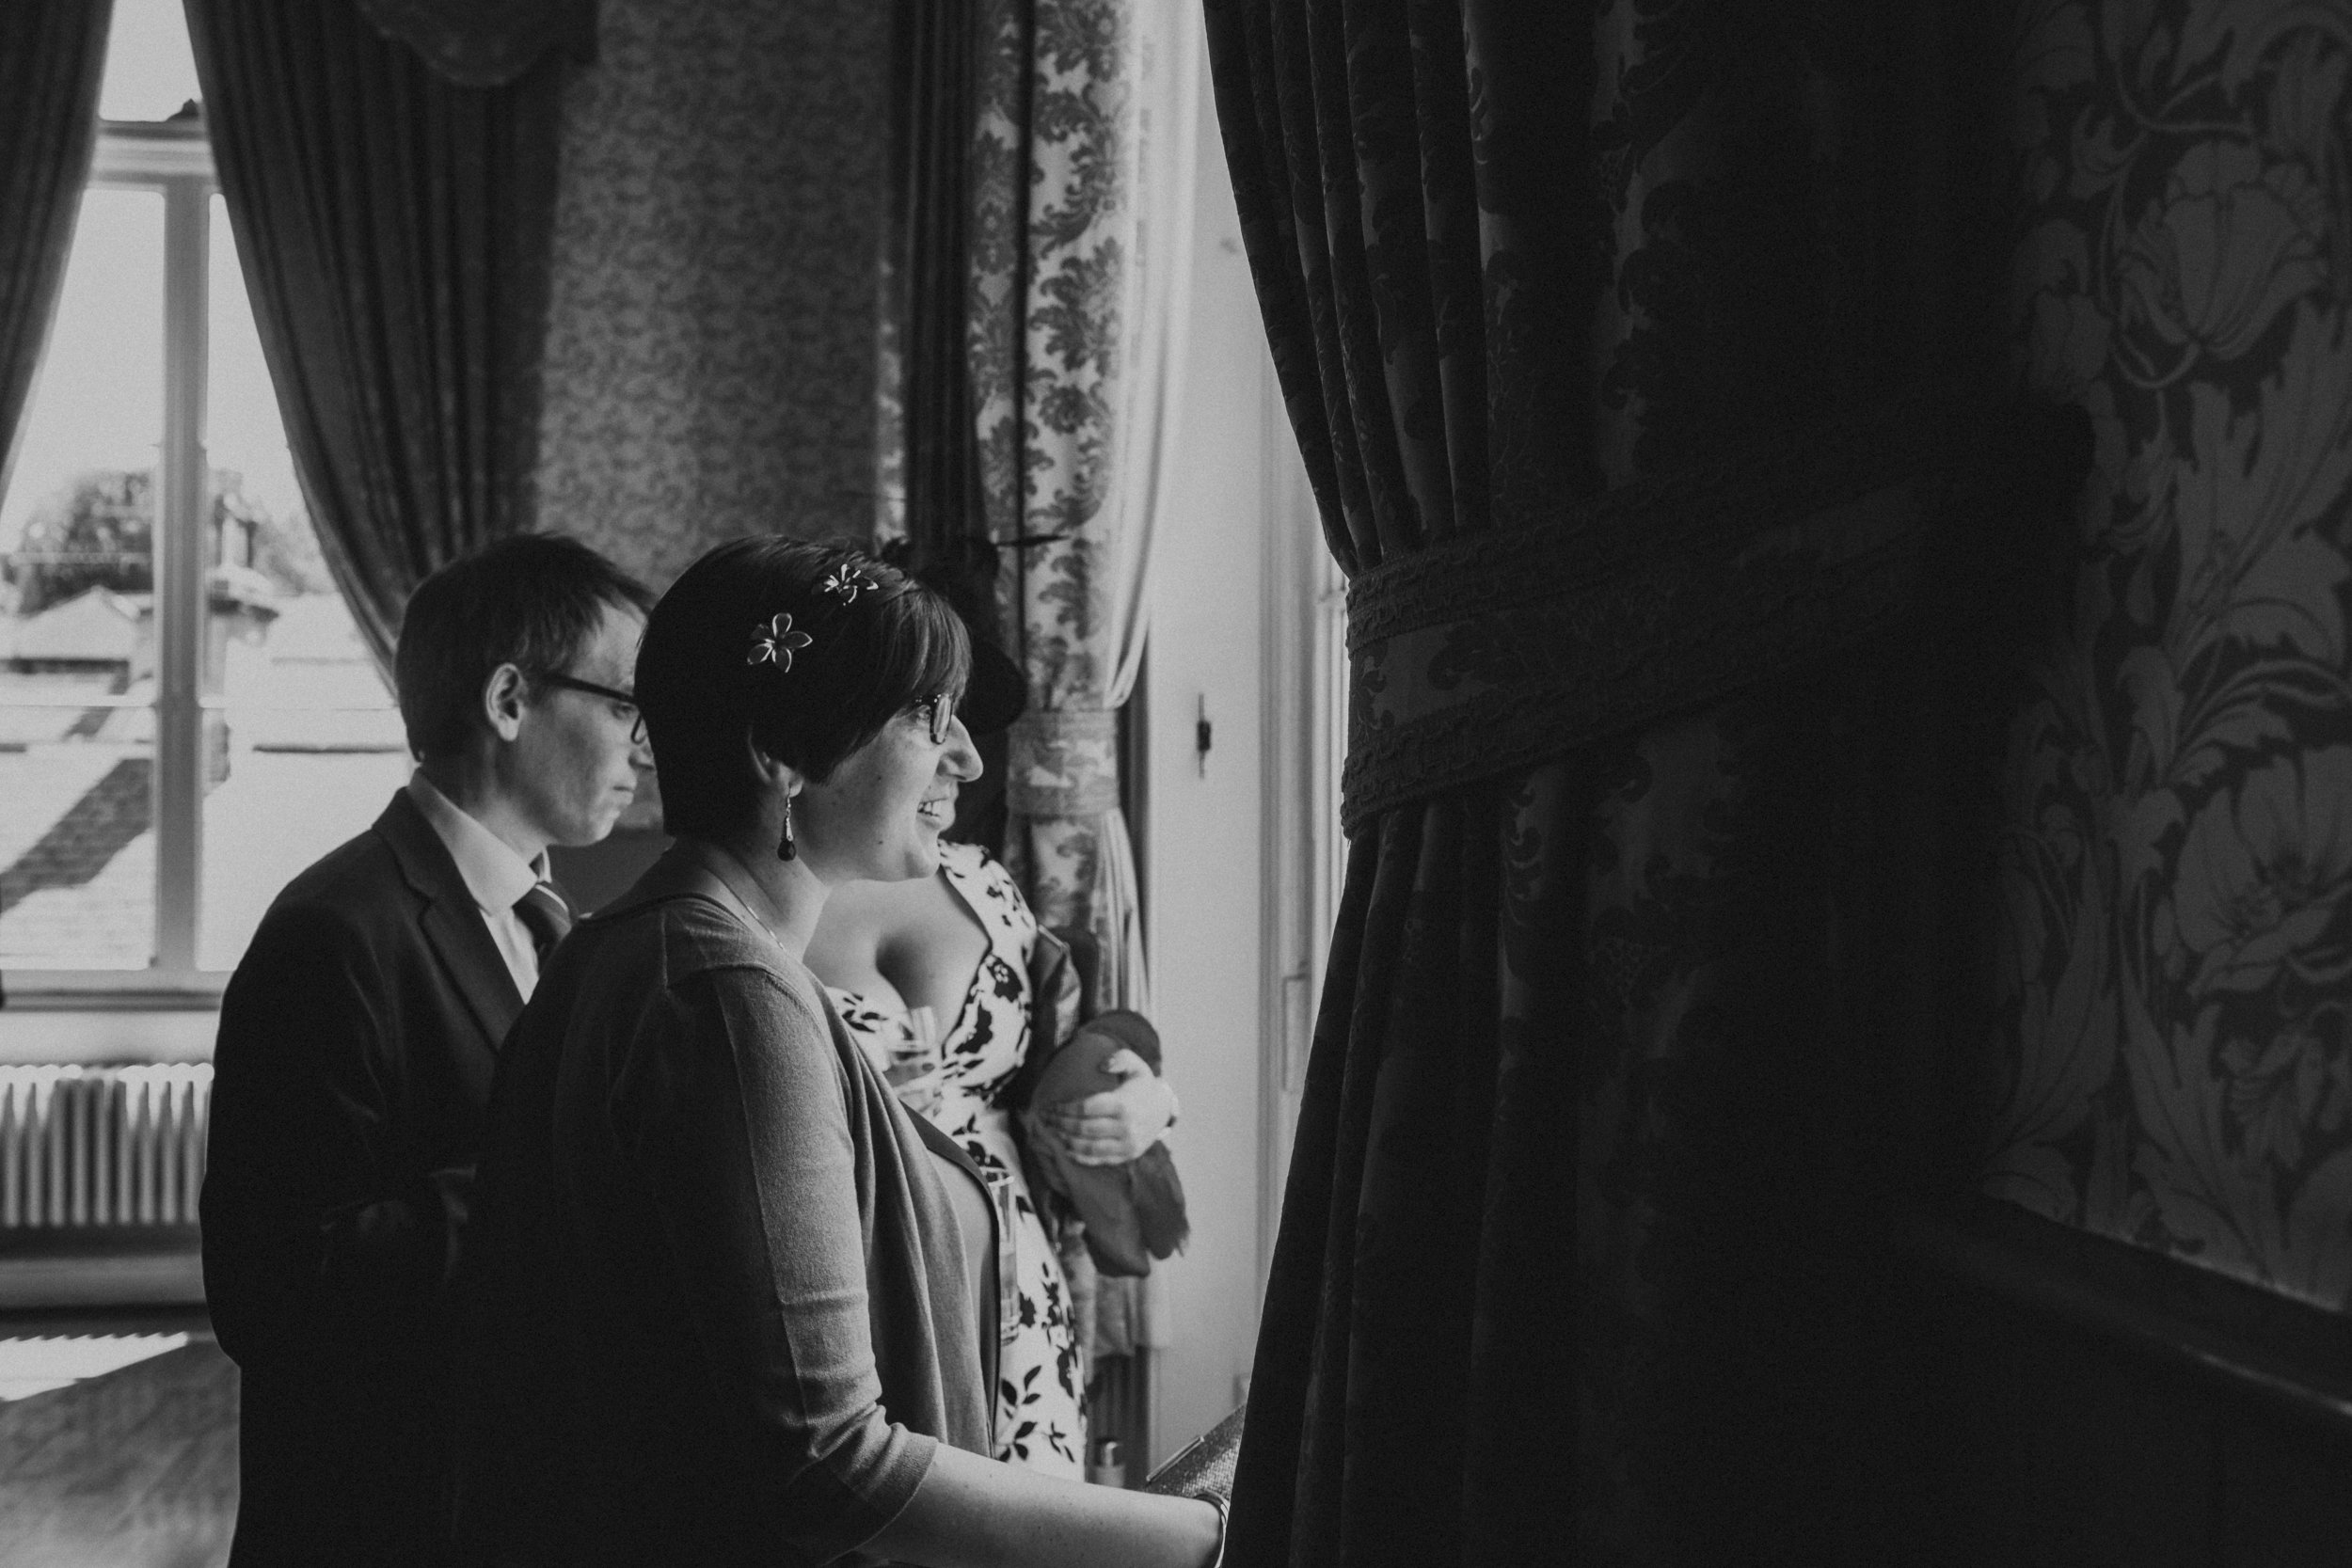 VICTORIA_HALL_SALTAIRE_VINTAGE_YORKSHIRE_WEDDING_PJ_PHILLIPS_PHOTOGRAPHY_58.jpg